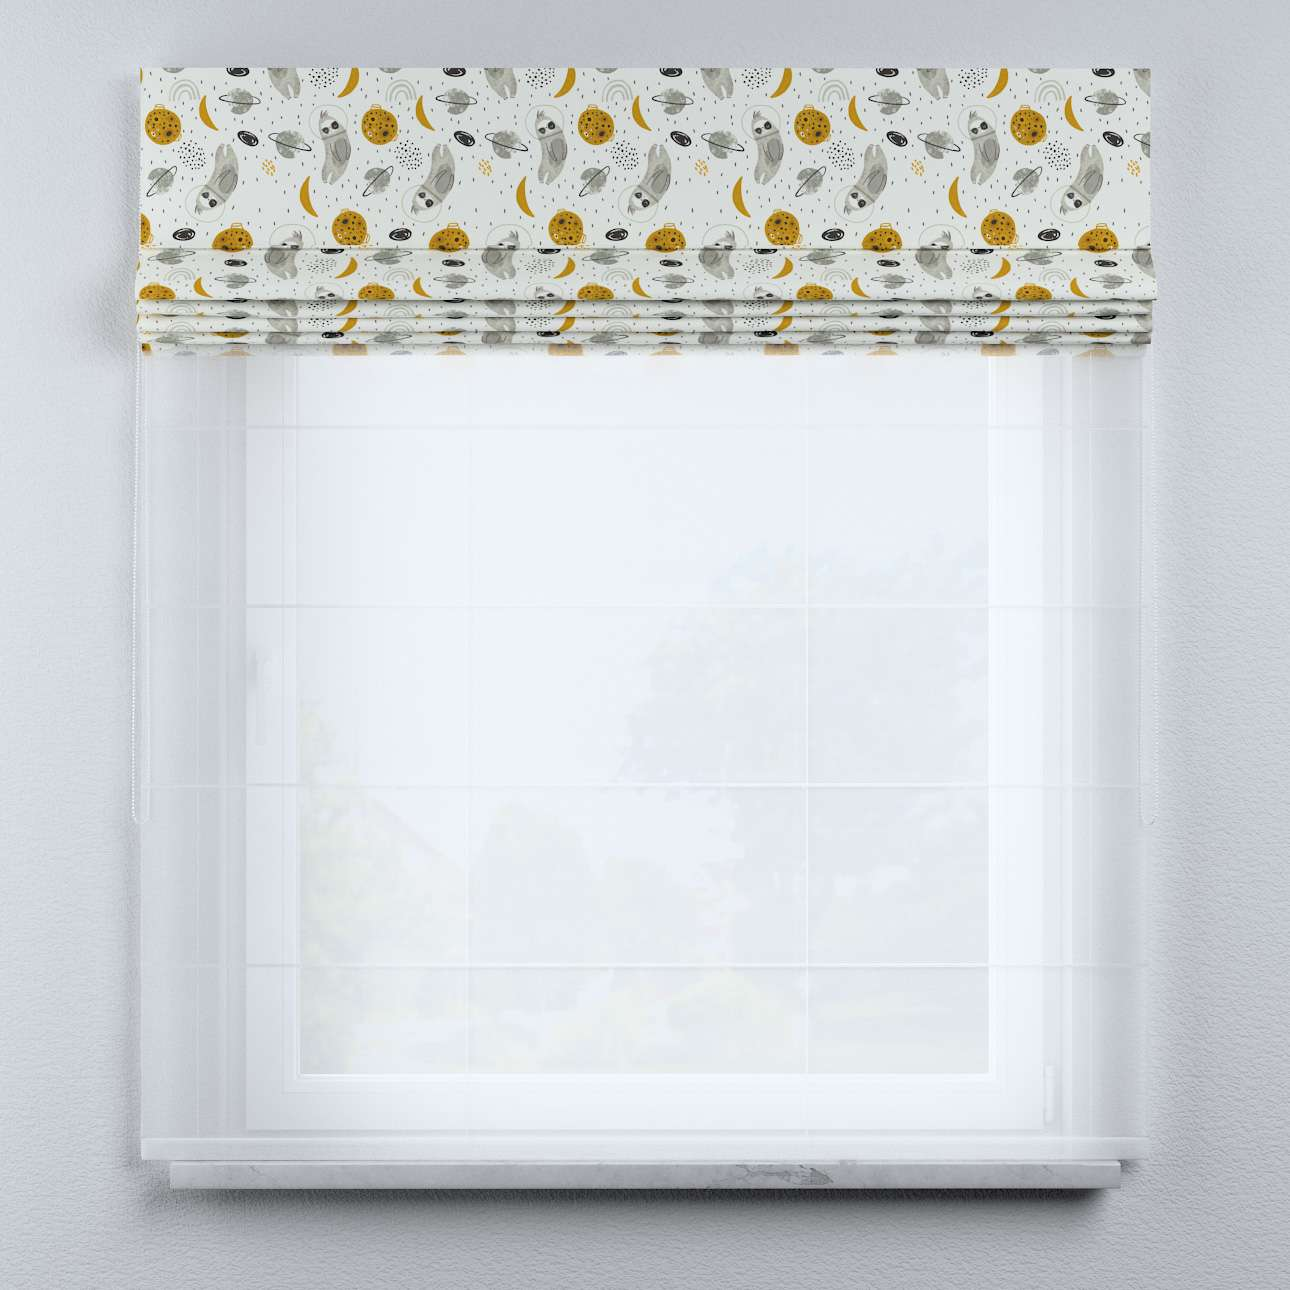 Voile and fabric roman blind (DUO II) in collection Magic Collection, fabric: 500-44